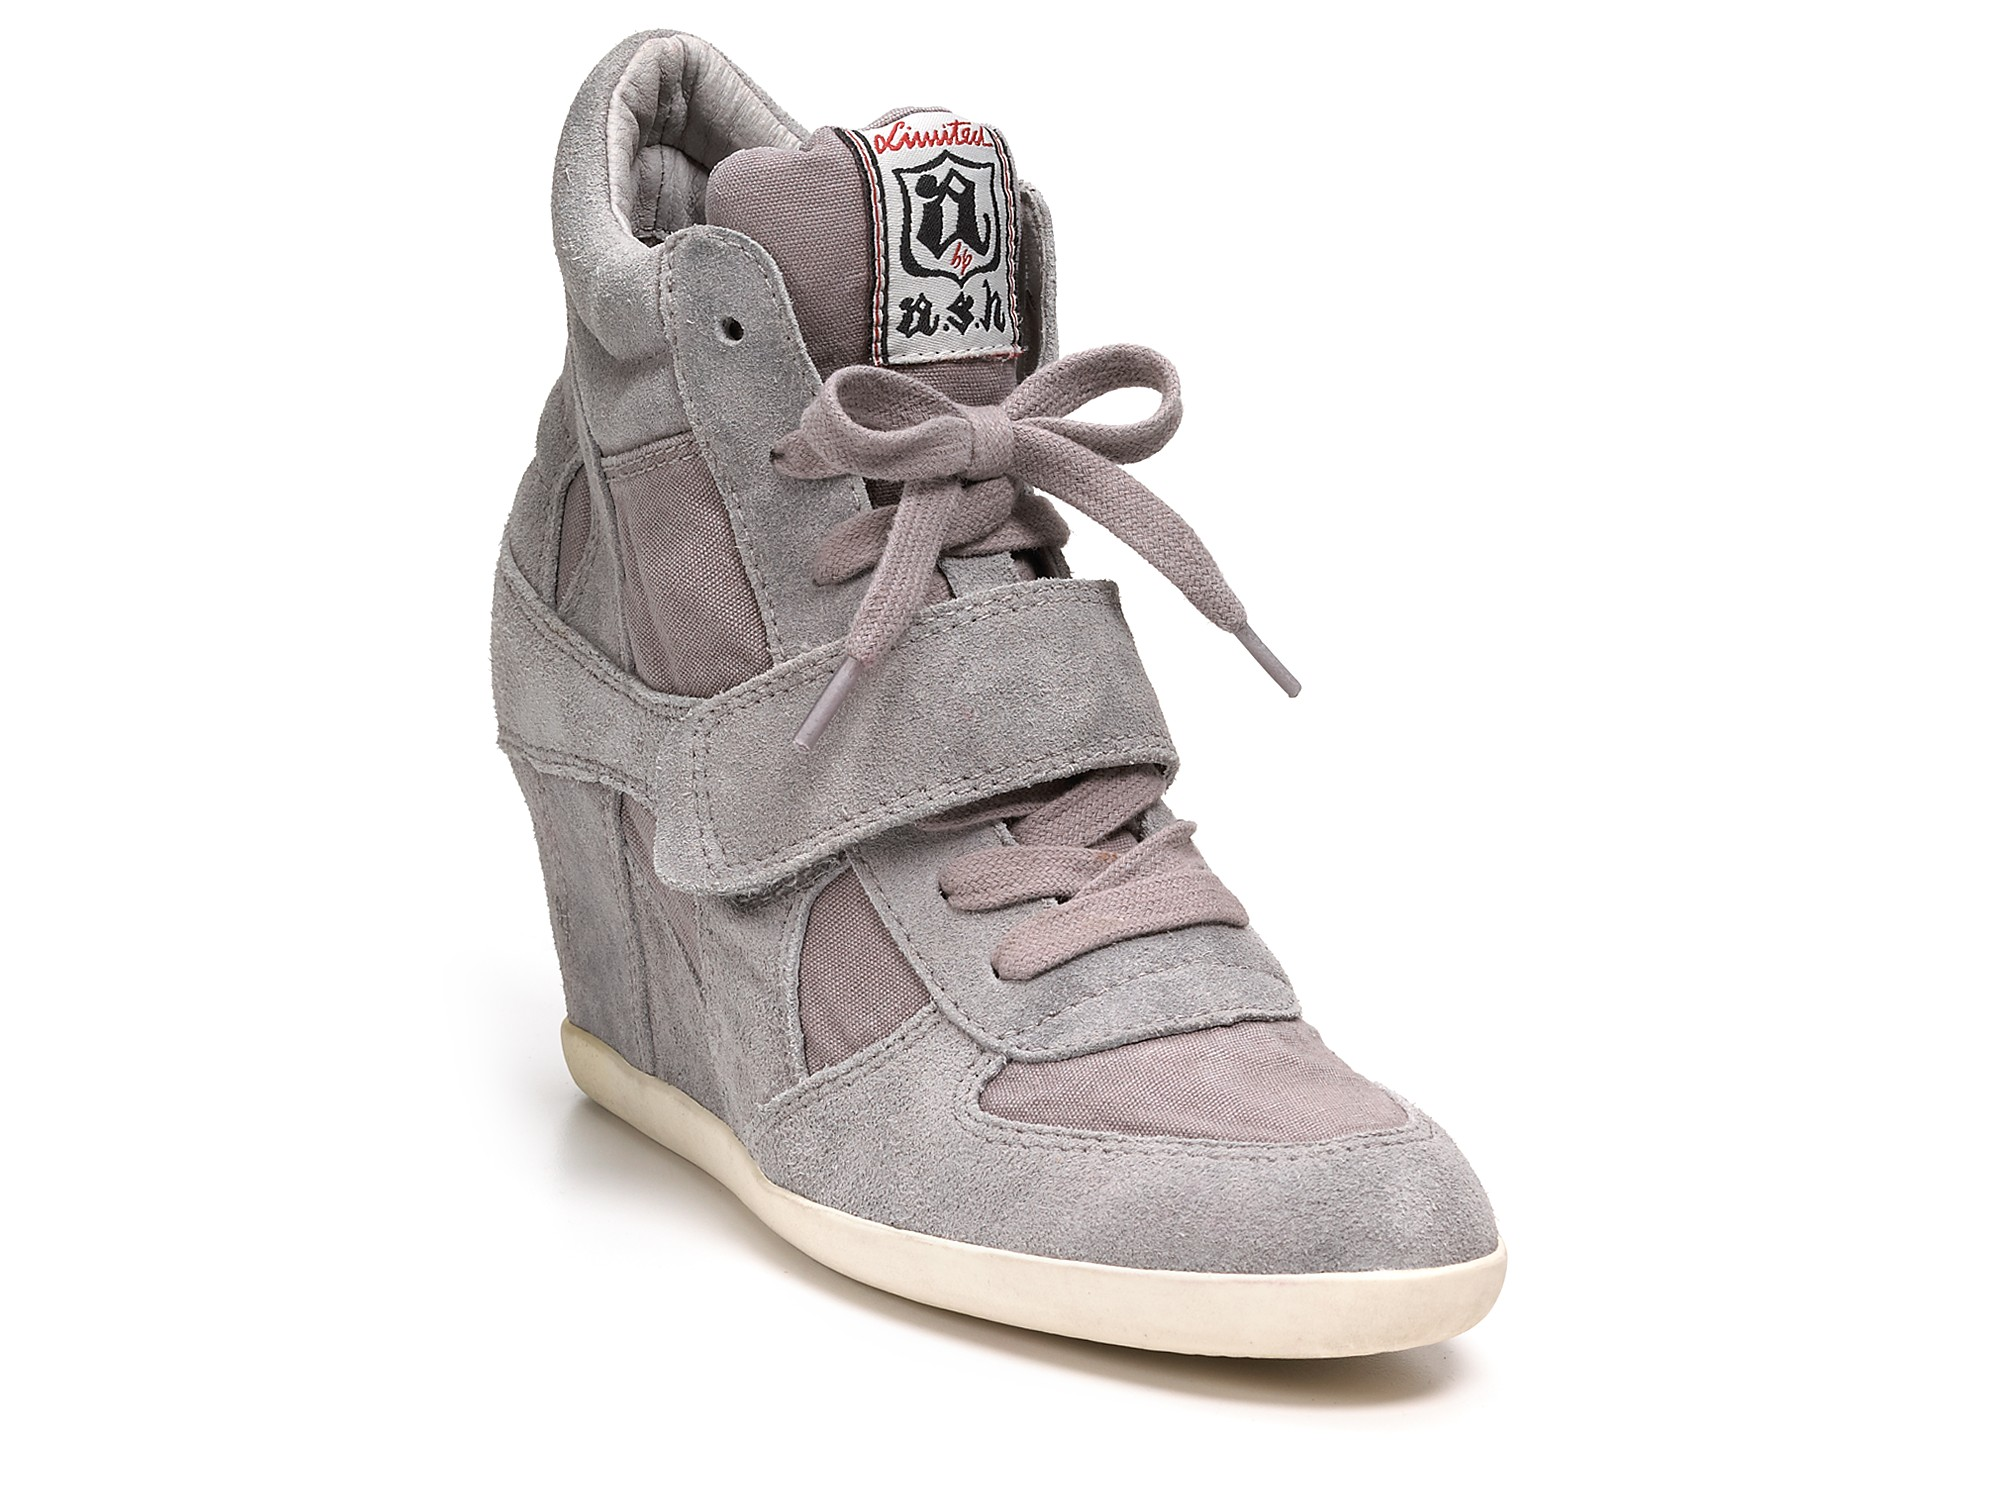 Ash Wedges Bowie Sneakers In Gray Lyst